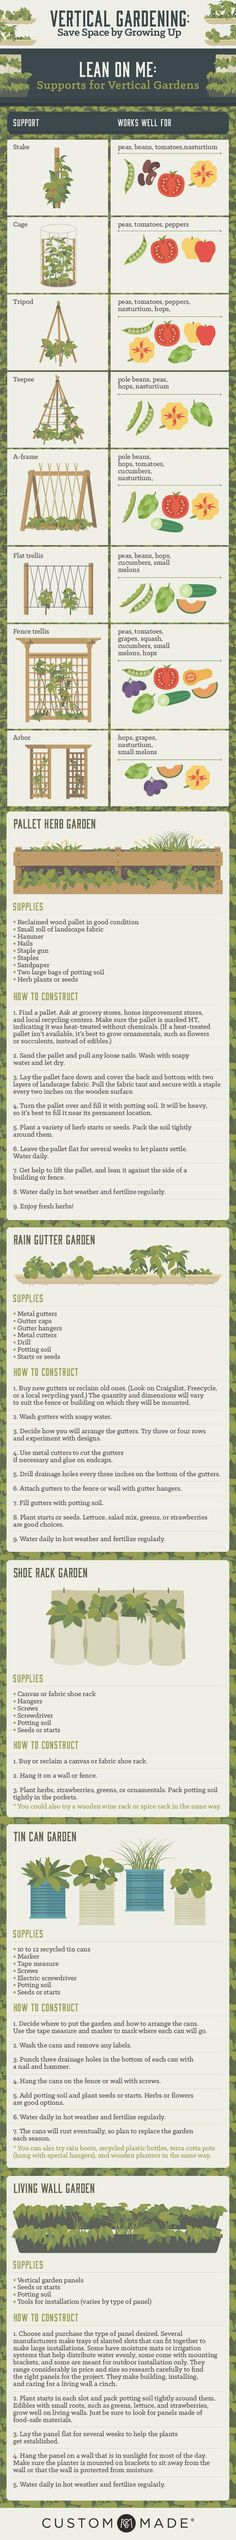 Vertical Gardening- Save Space by Growing Up [INFO-GRAPHIC]